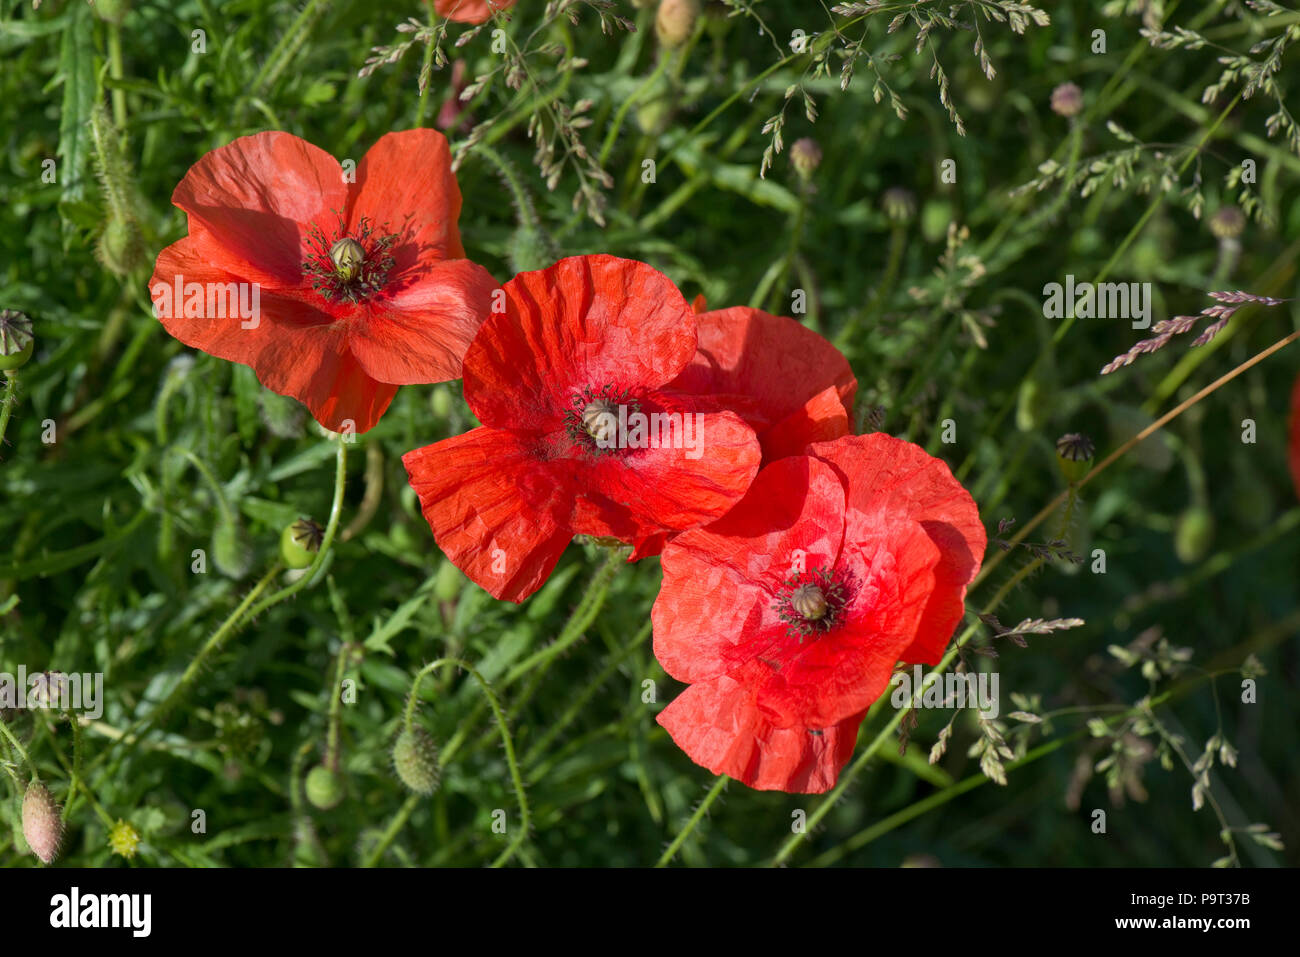 Scarlet red flowers of long-headed poppy, Papaver dubium, in summer, Berkshire, June - Stock Image